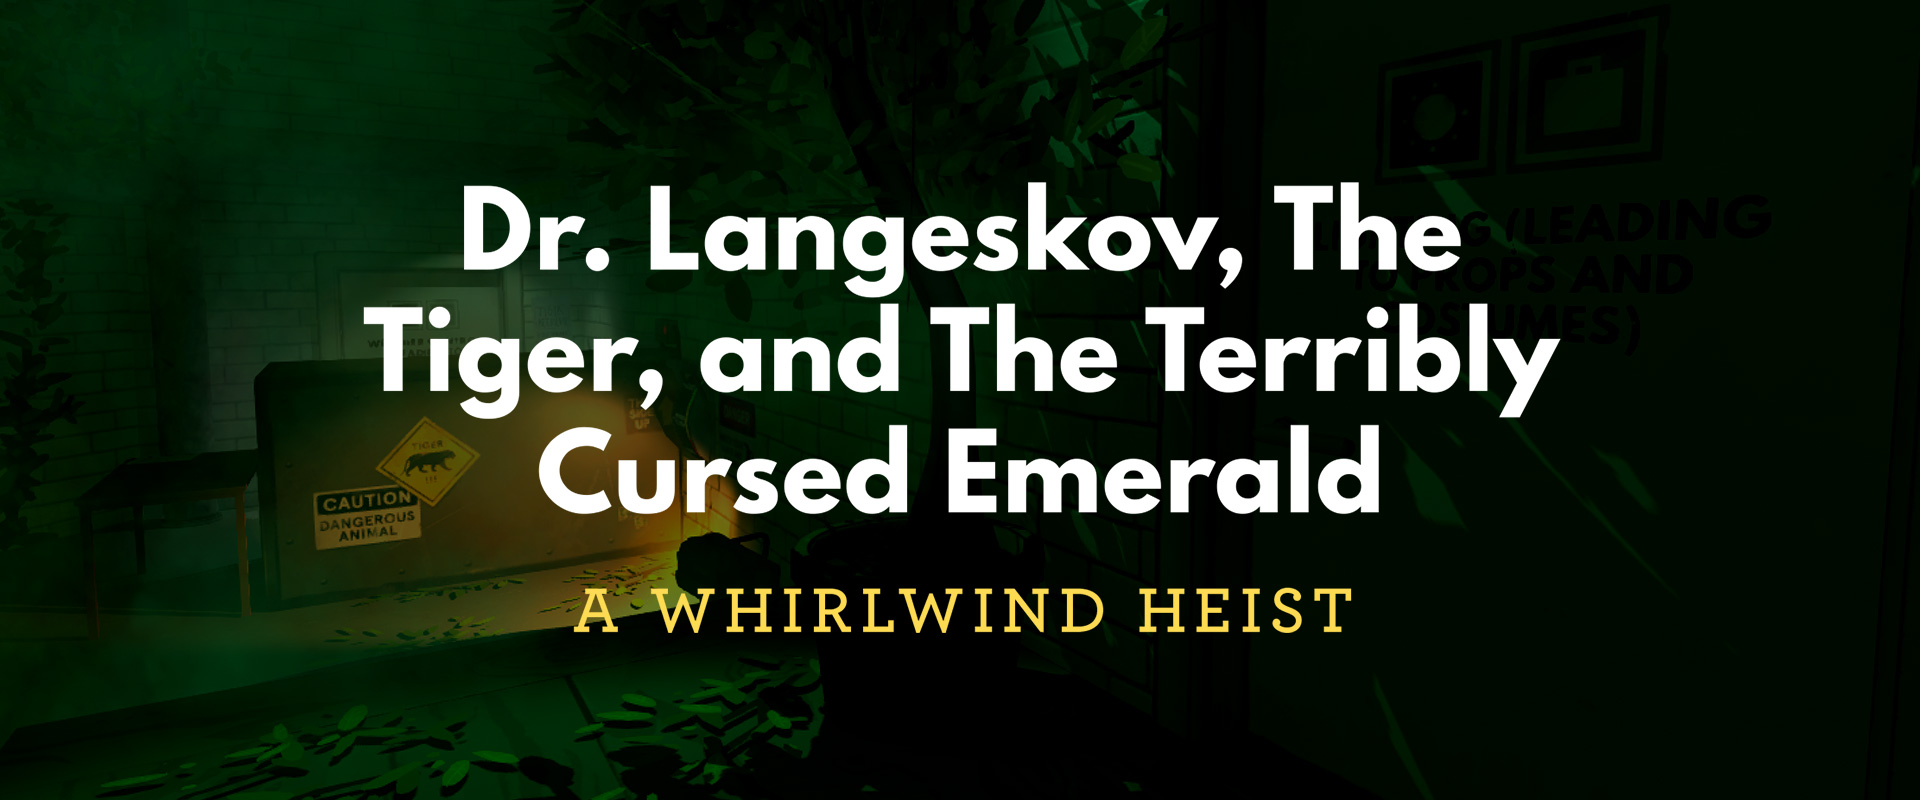 Dr  Langeskov, The Tiger, And The Terribly Cursed Emerald: A